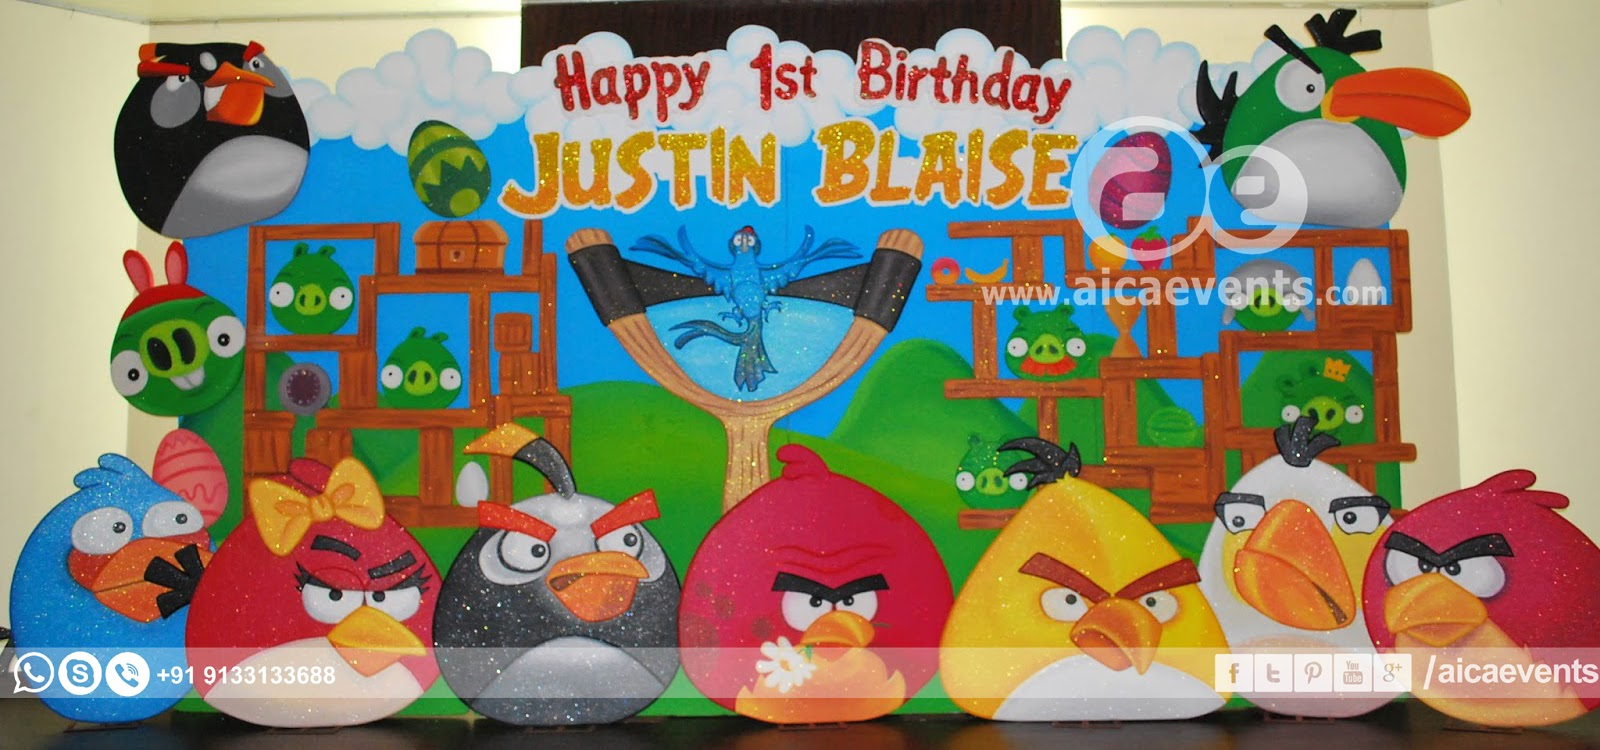 Aicaevents india angry bird theme decors for birthday parties for Angry bird decoration ideas